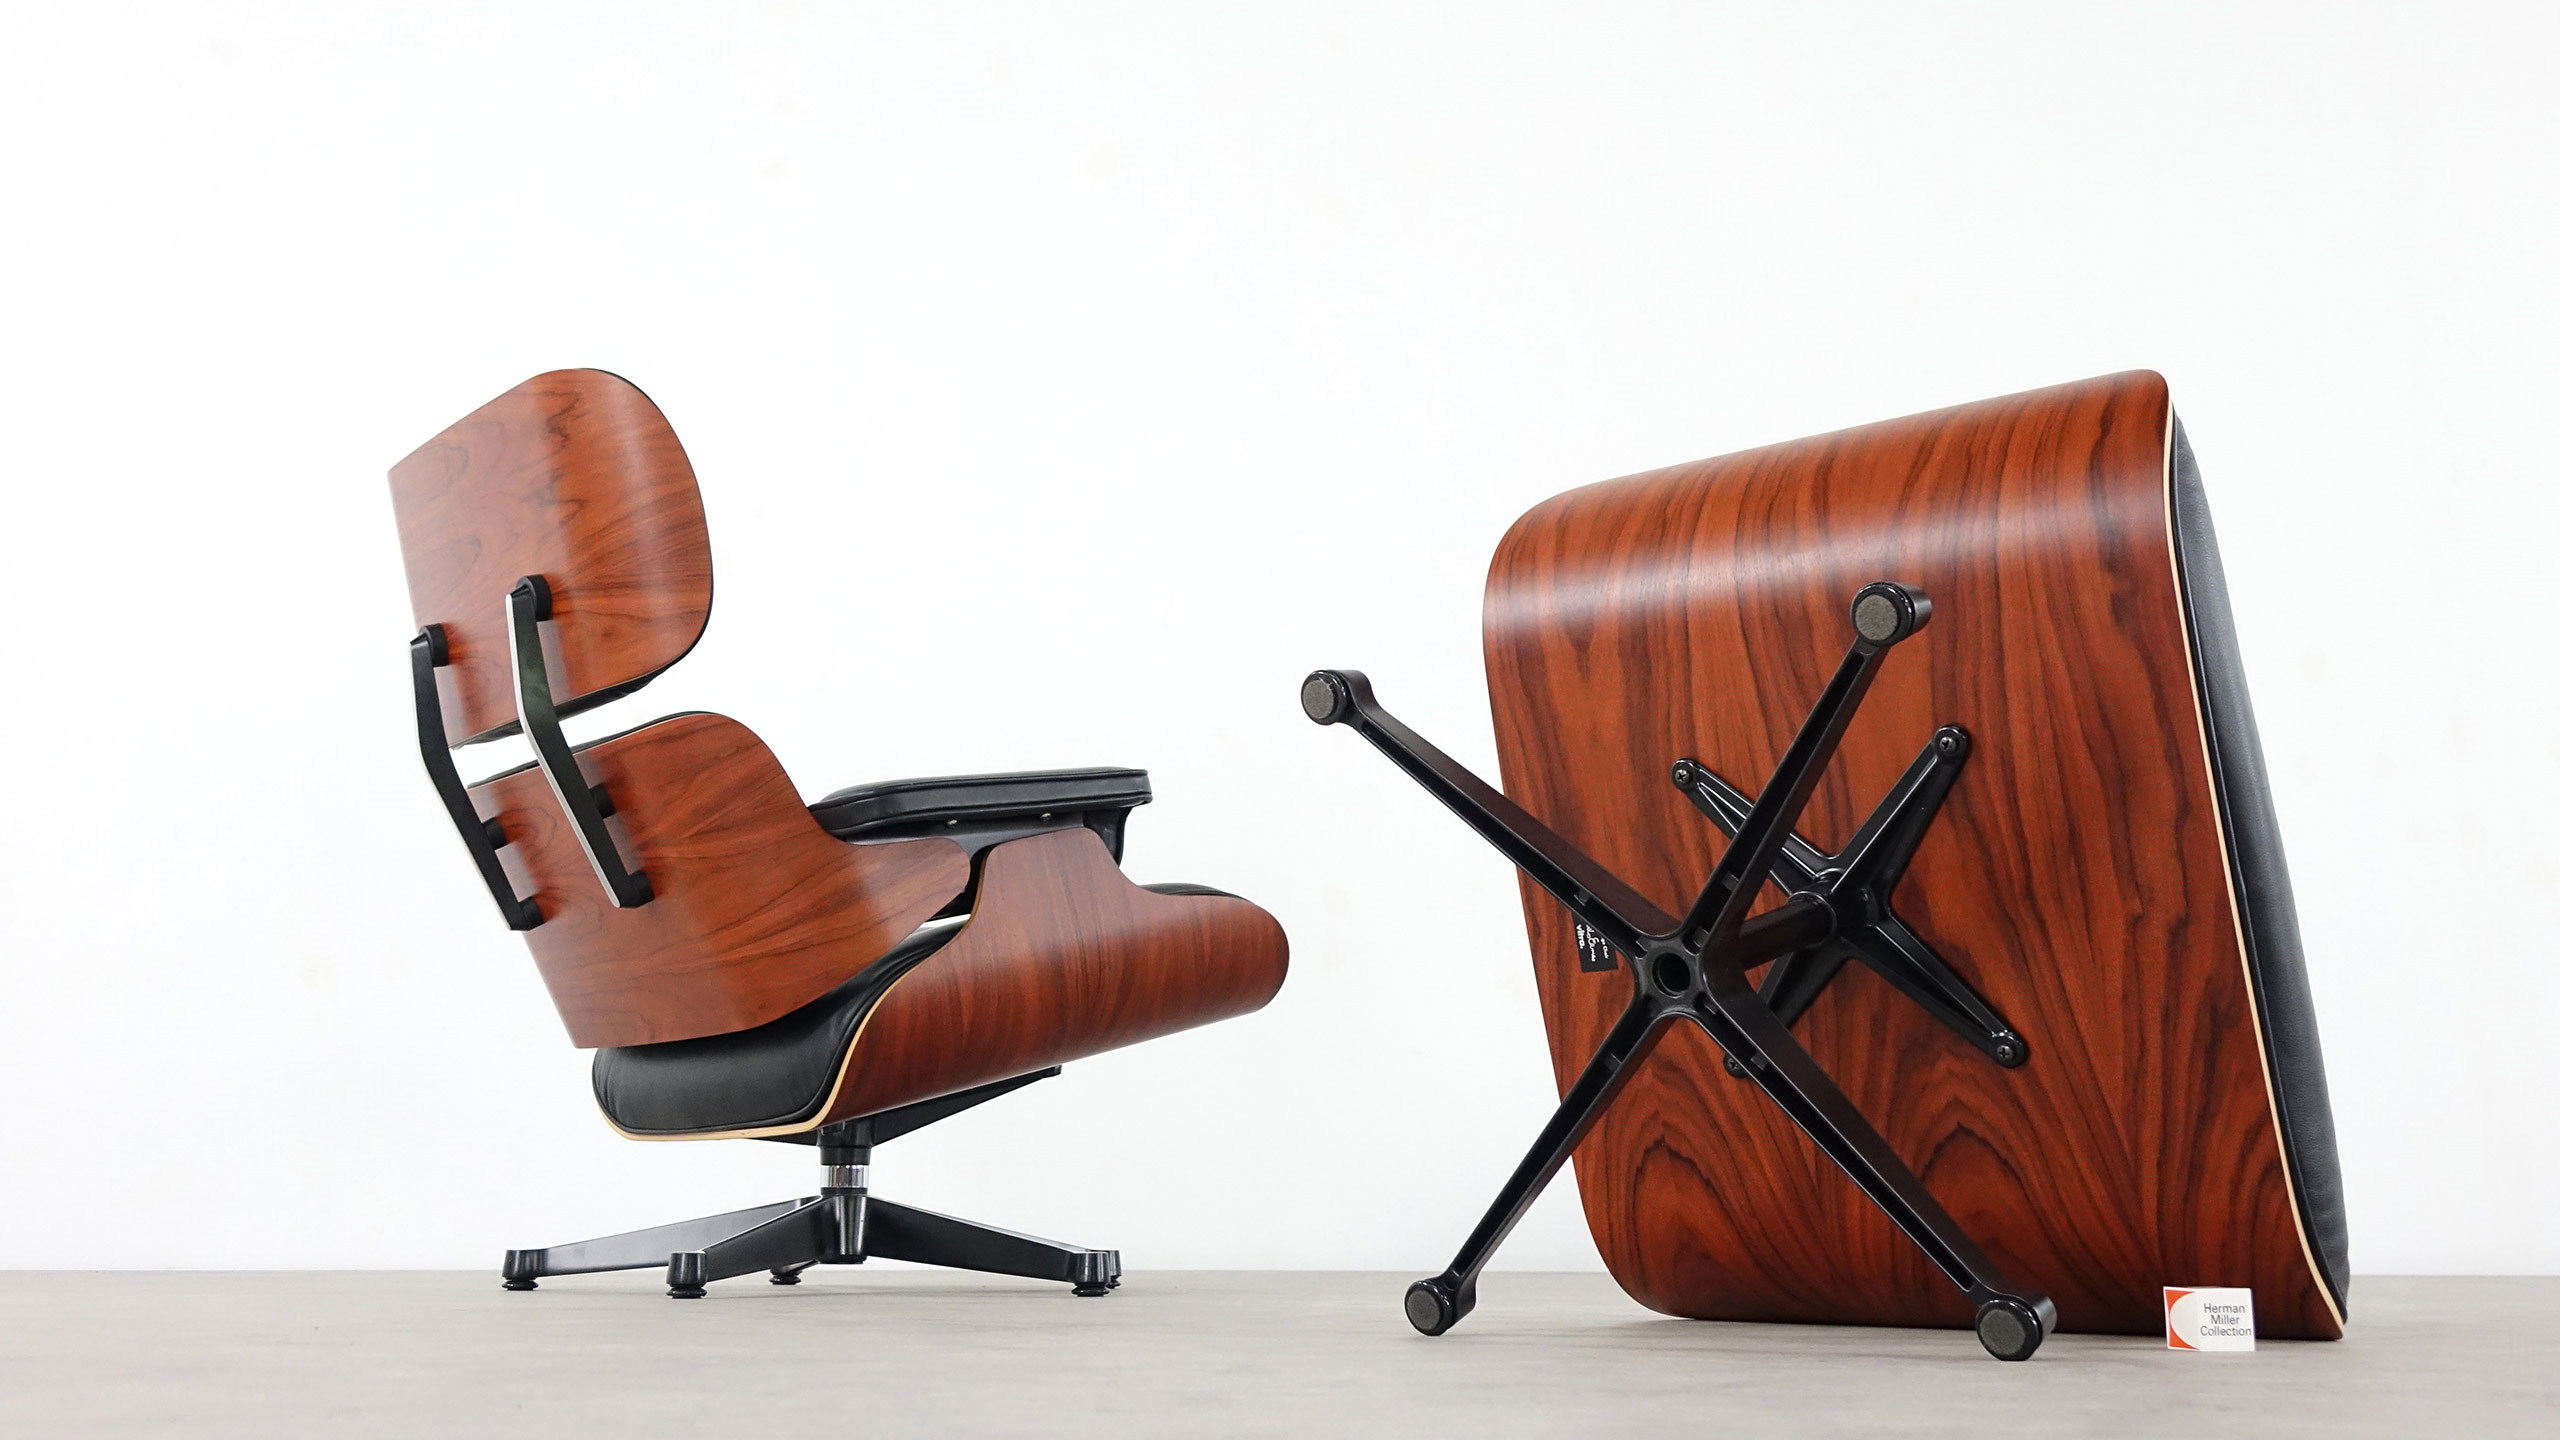 Charles eames lounge chair by vitra for Charles eames lounge chair nachbildung